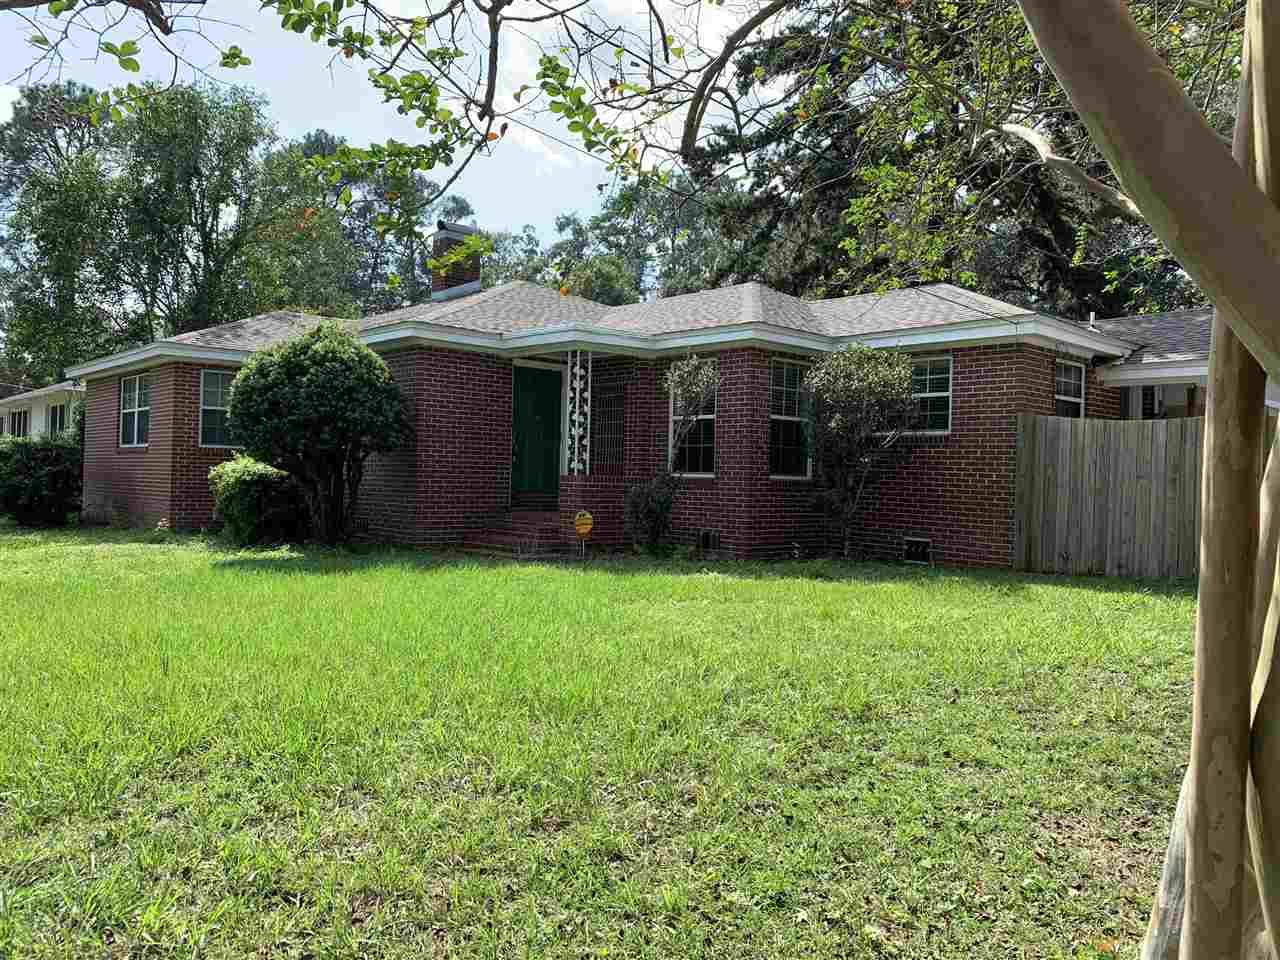 Photo of 1716 Monticello Drive, TALLAHASSEE, FL 32303 (MLS # 323495)